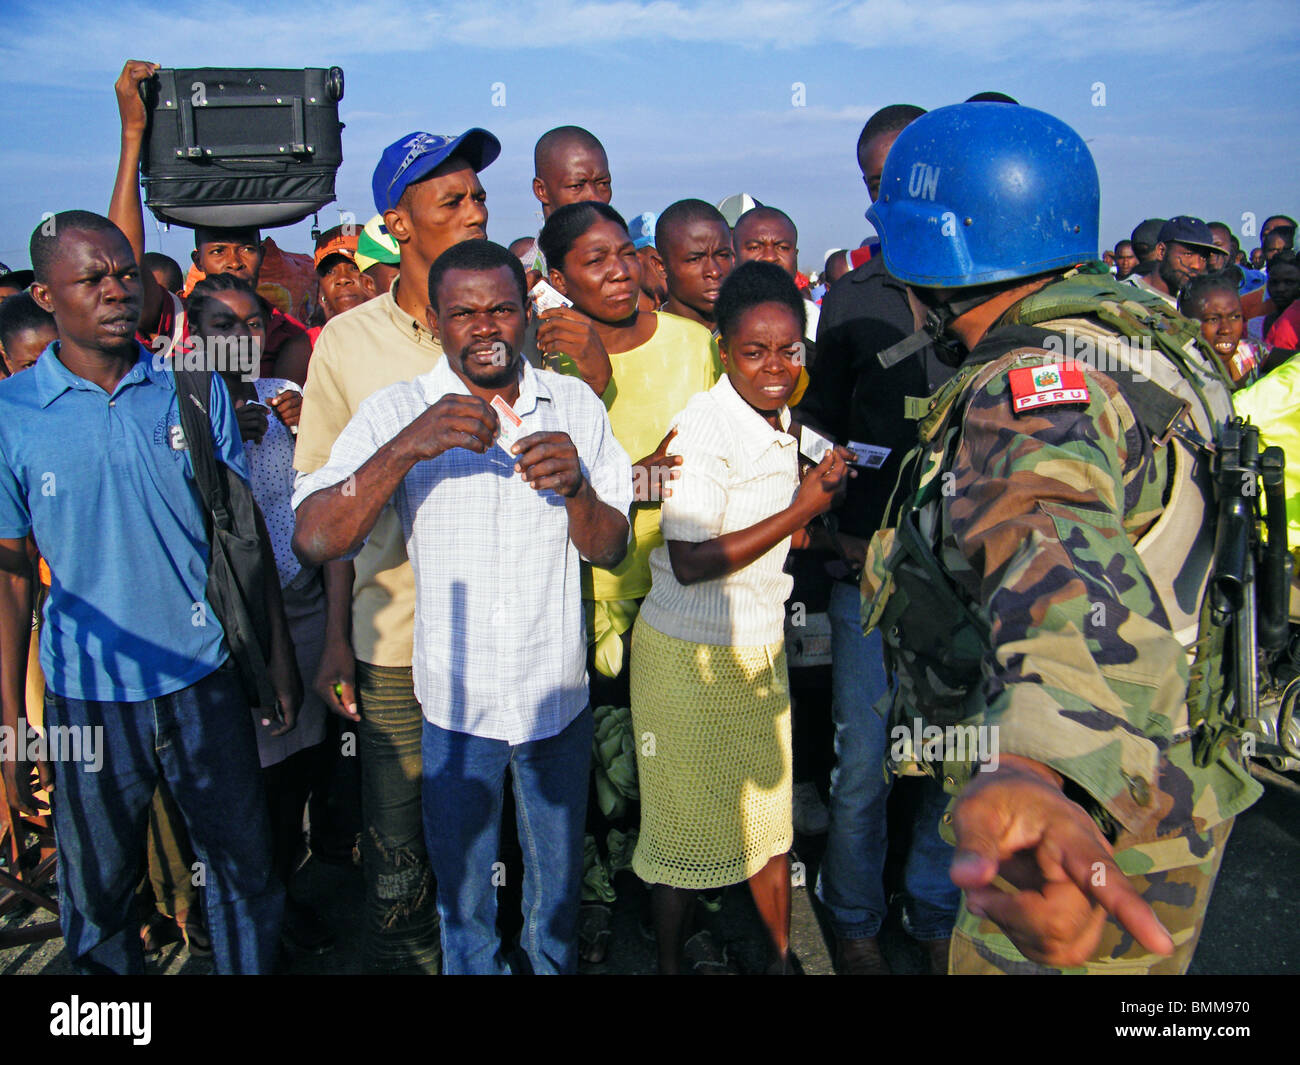 Crowds of earthquake survivors waiting for aid and trying to leave the city at a checkpoint in Port au Prince, Haiti - Stock Image